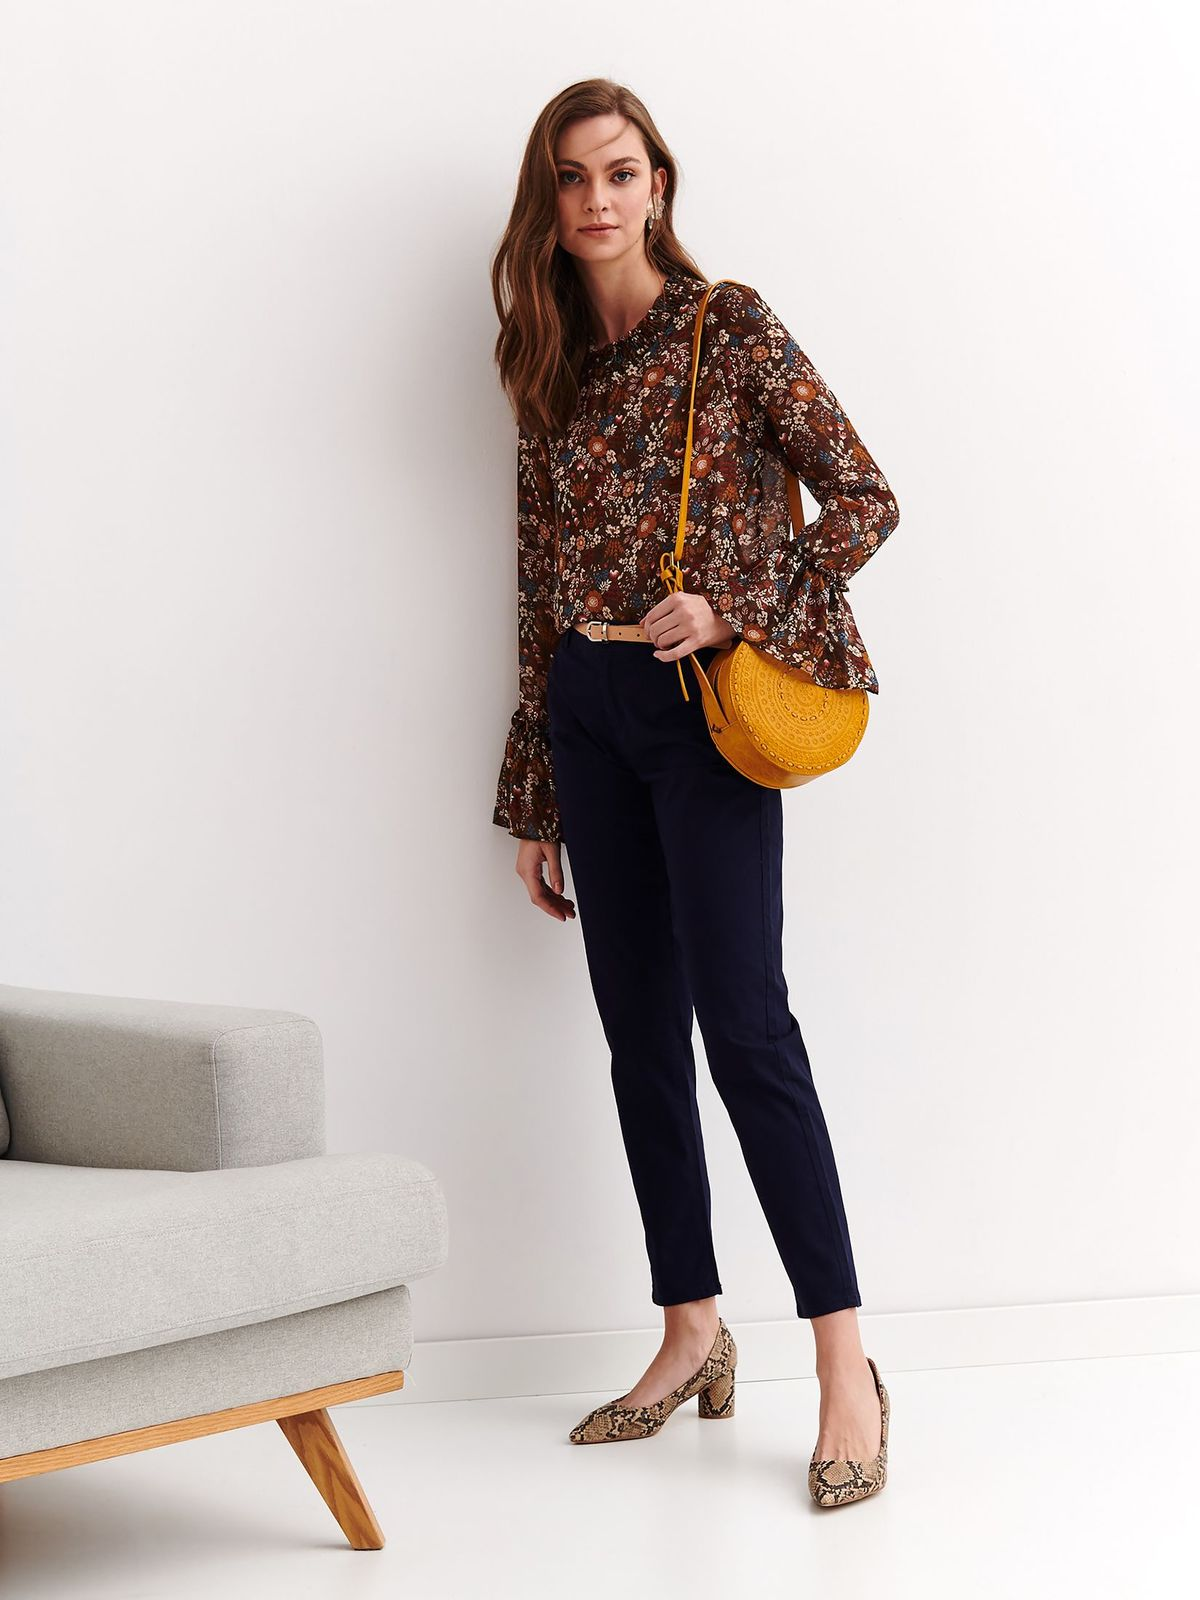 Darkblue trousers casual conical accessorized with belt